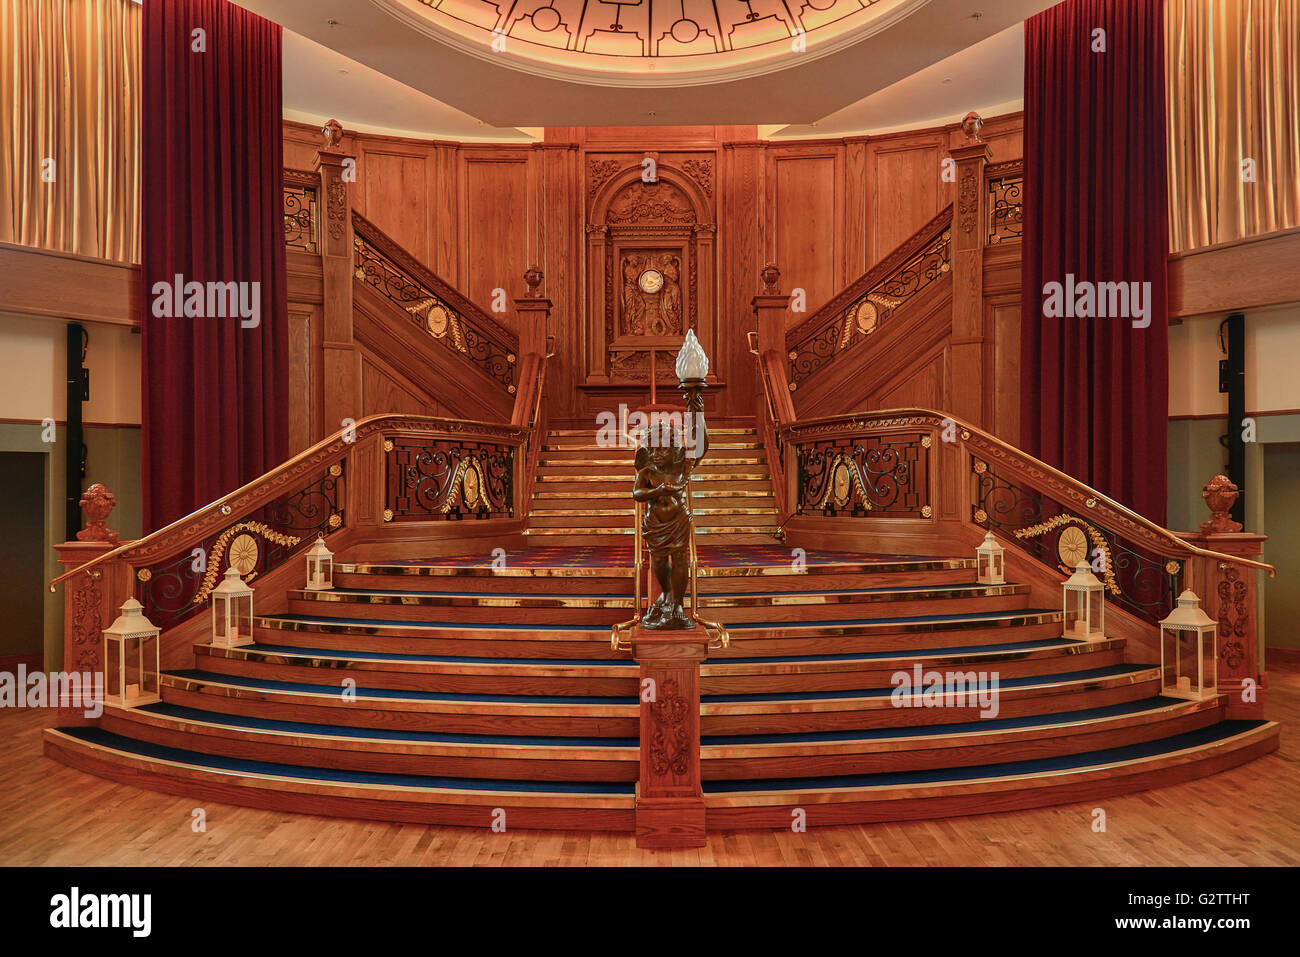 Ireland, Belfast, Titanic Quarter, Titanic Belfast Visitor Experience, interior of the ballroom showing replica - Stock Image